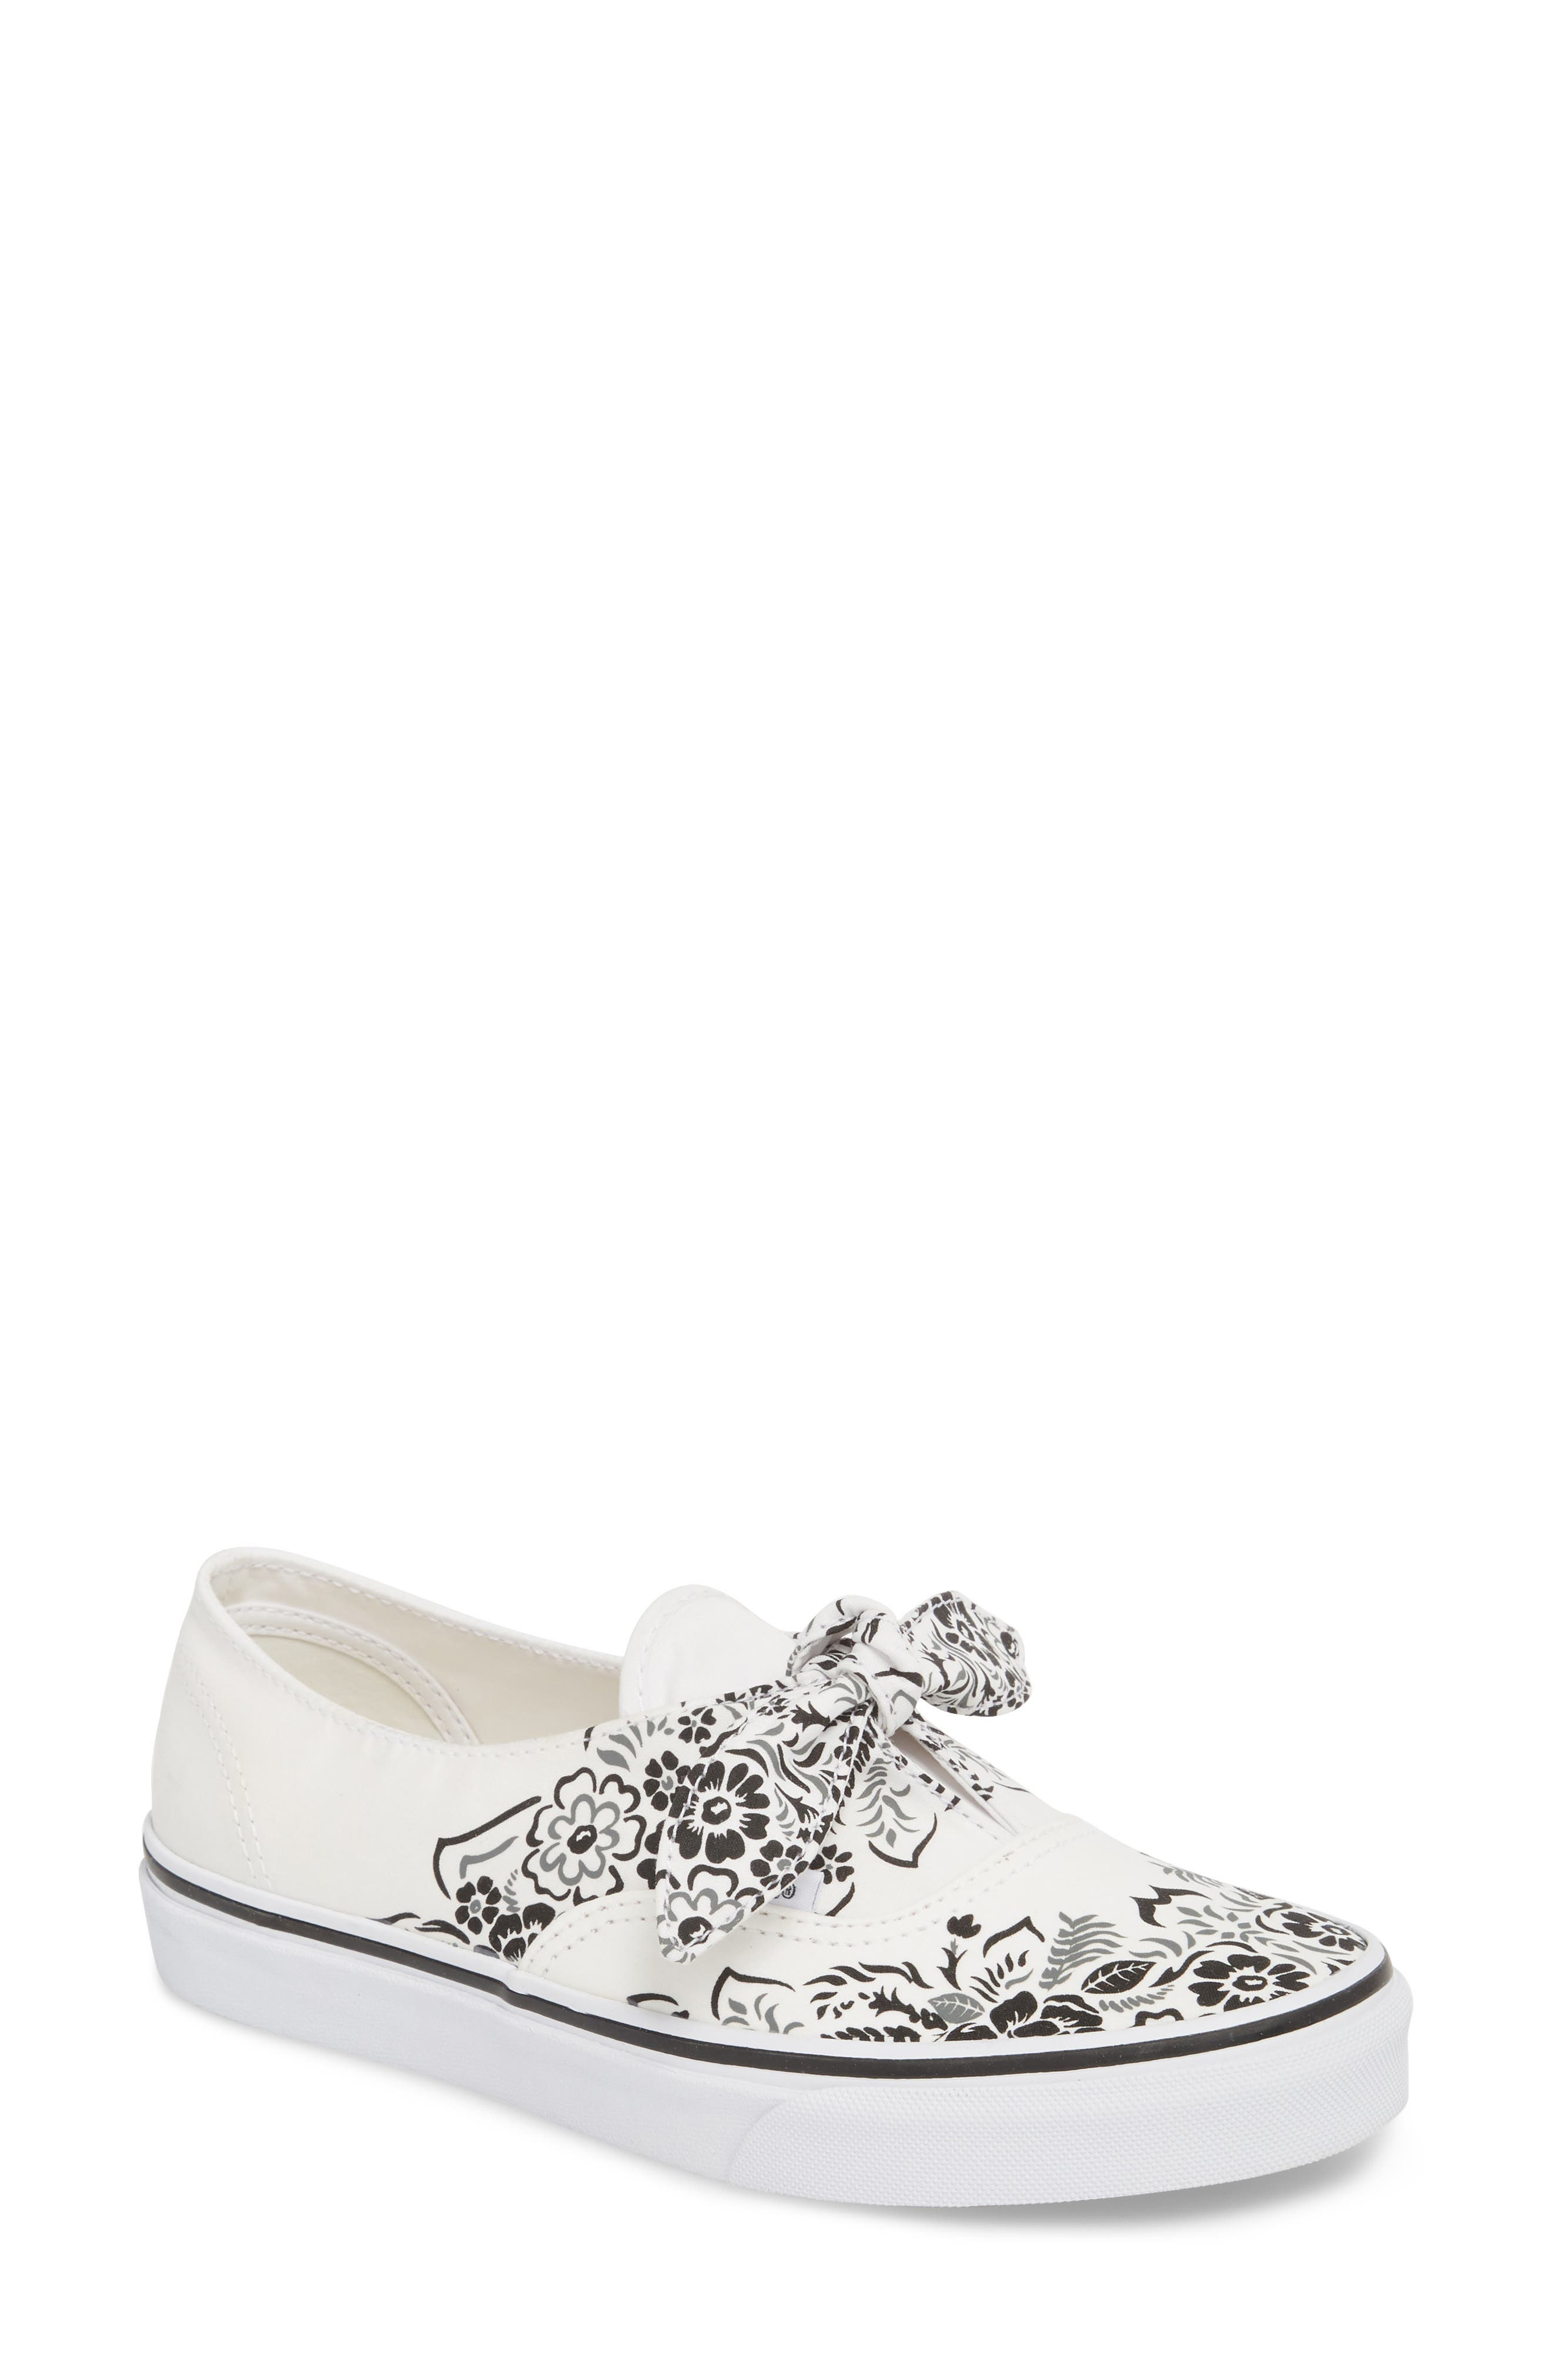 UA Authentic Knotted Floral Bandana Slip-On Sneaker,                             Main thumbnail 1, color,                             Marshmallow